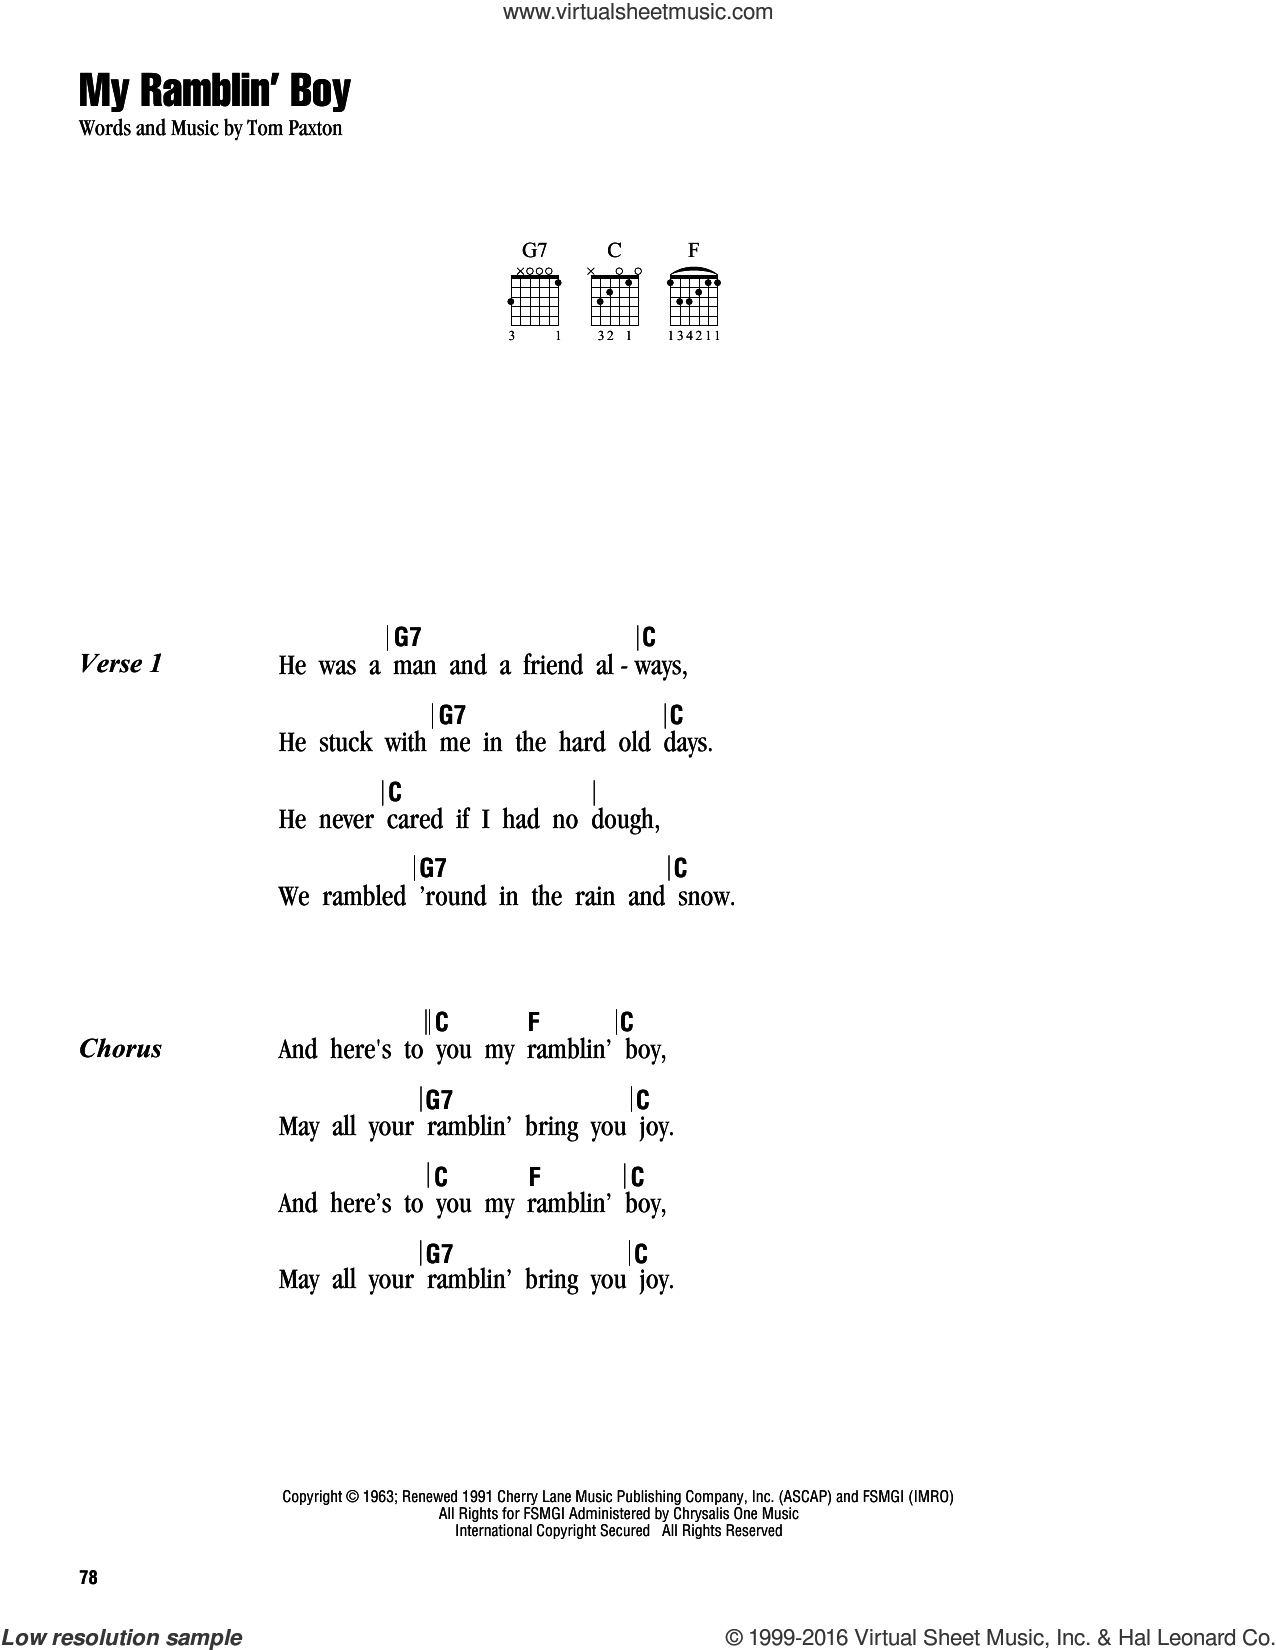 My Ramblin' Boy sheet music for guitar (chords) by Tom Paxton, intermediate guitar (chords). Score Image Preview.